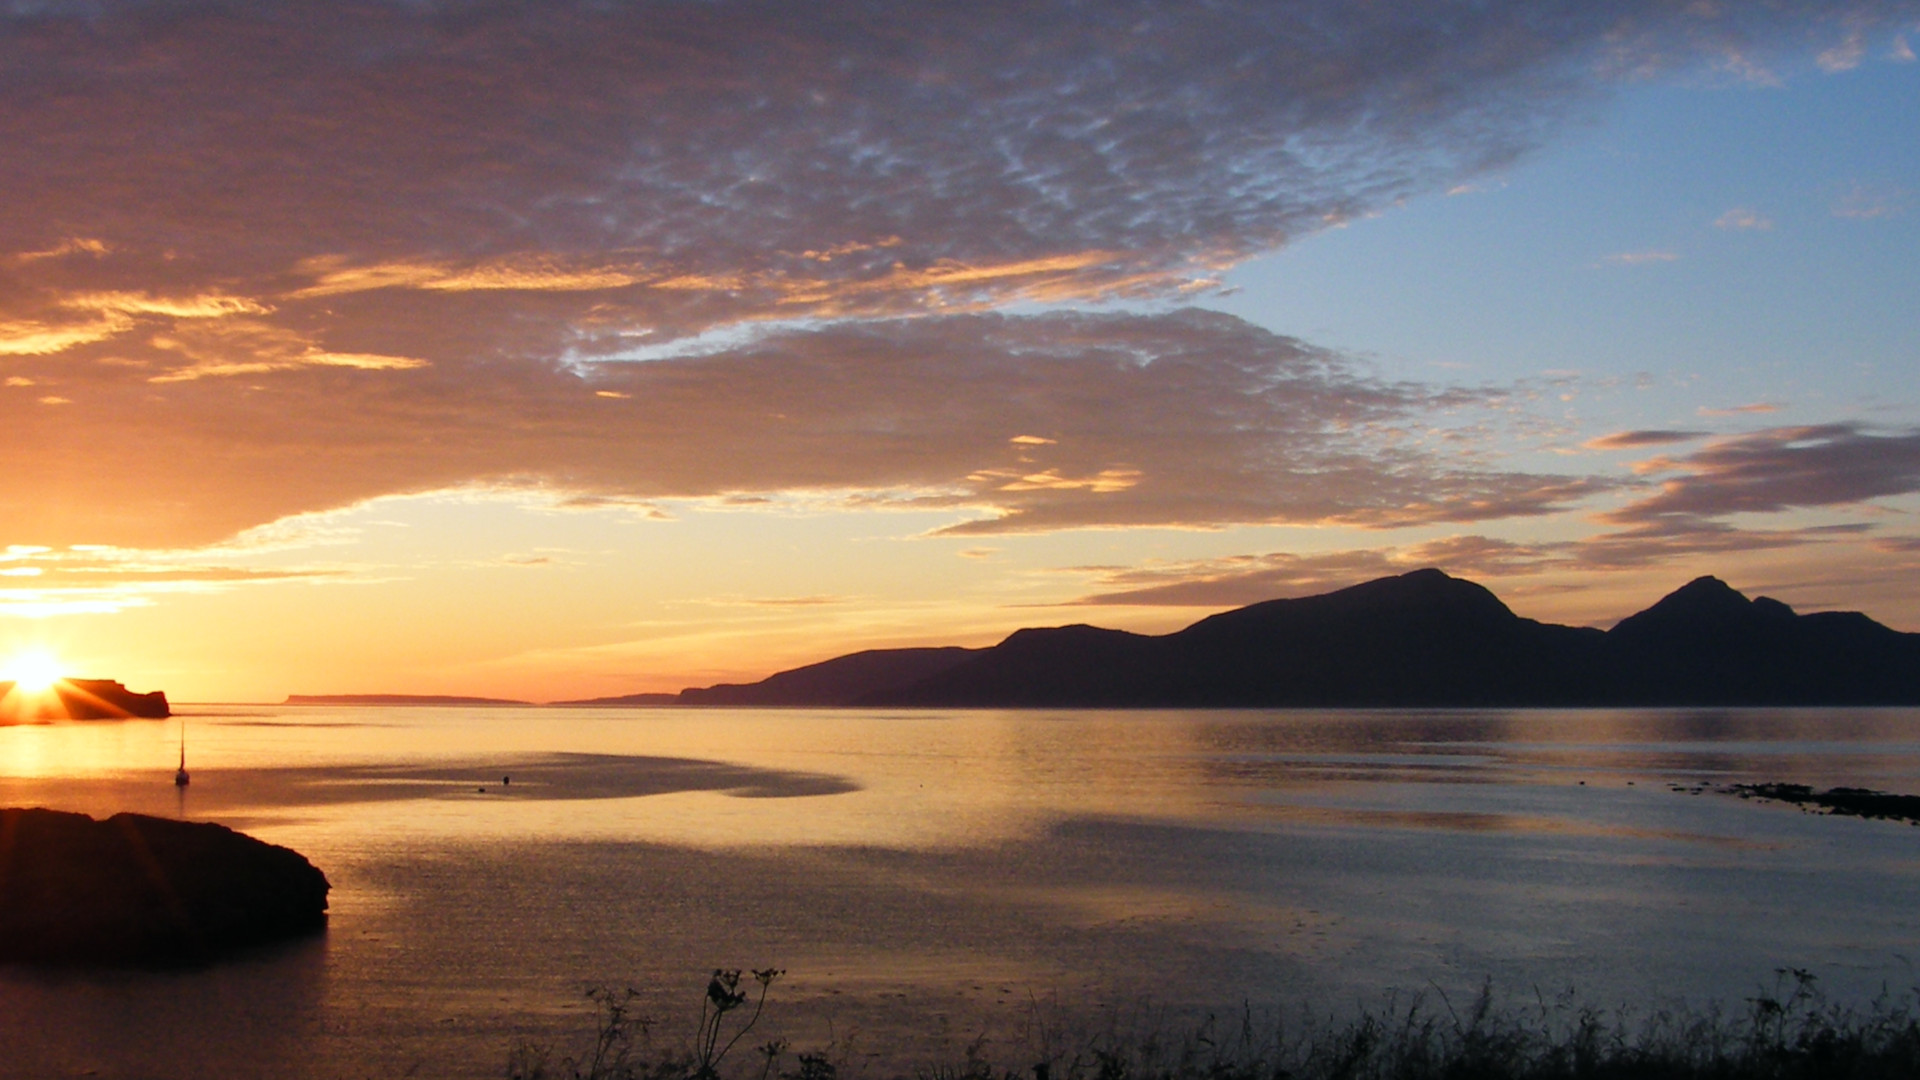 Sunset over Horse Island, Canna and Rùm. Photo: Chris Booth (CC BY-SA 2.0)